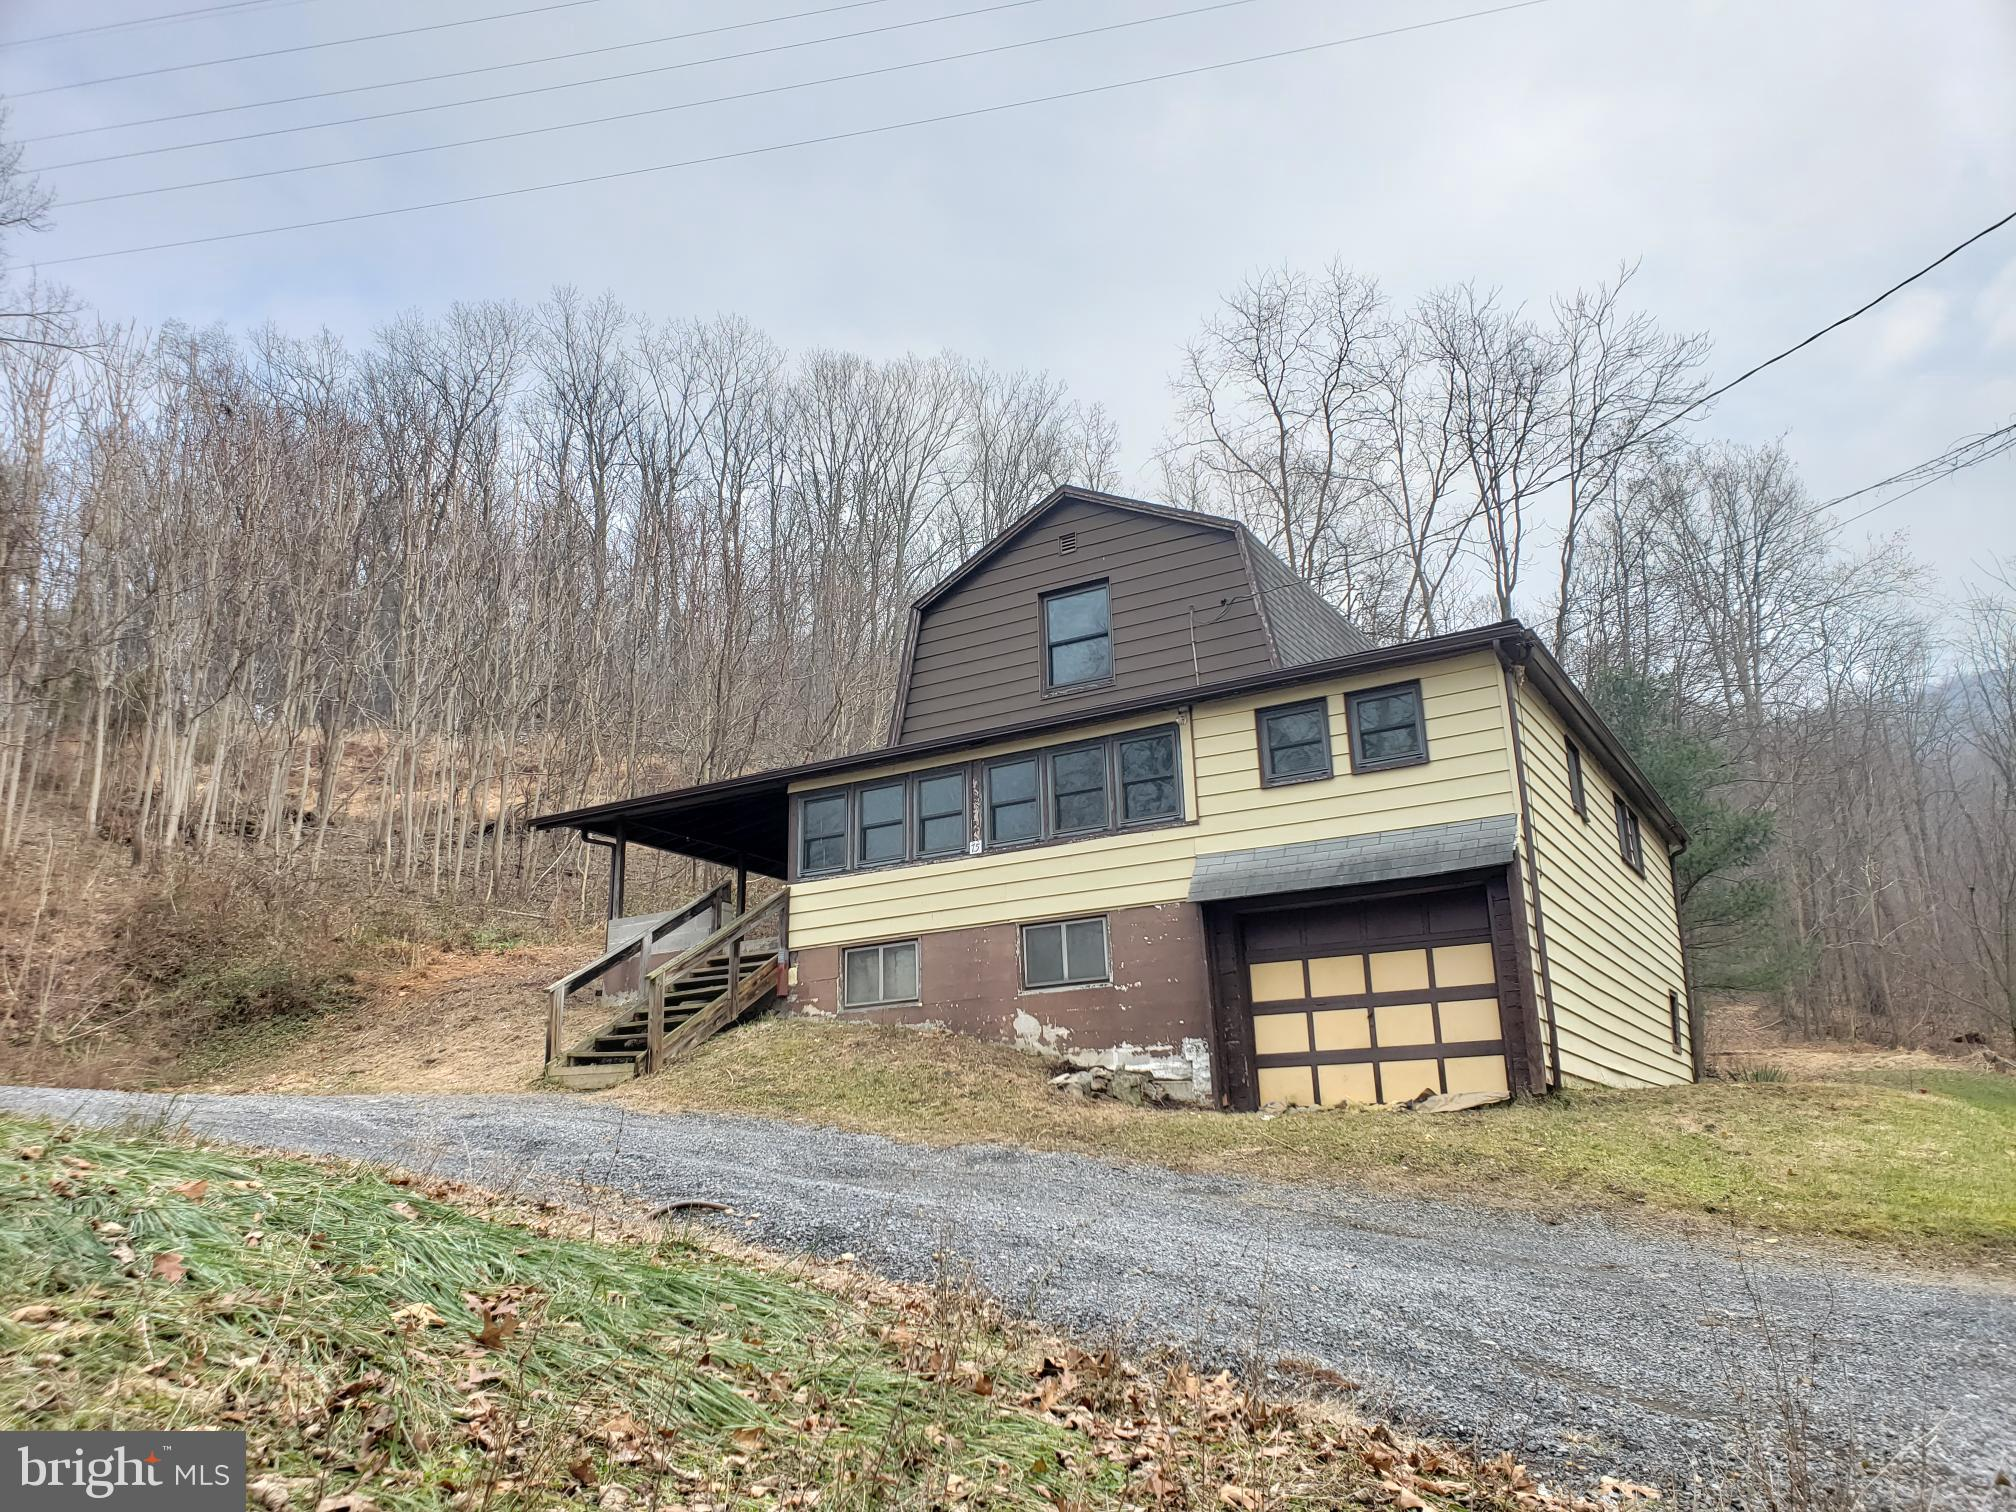 75 BRANNON LANE EXT, LEWISTOWN, PA 17044